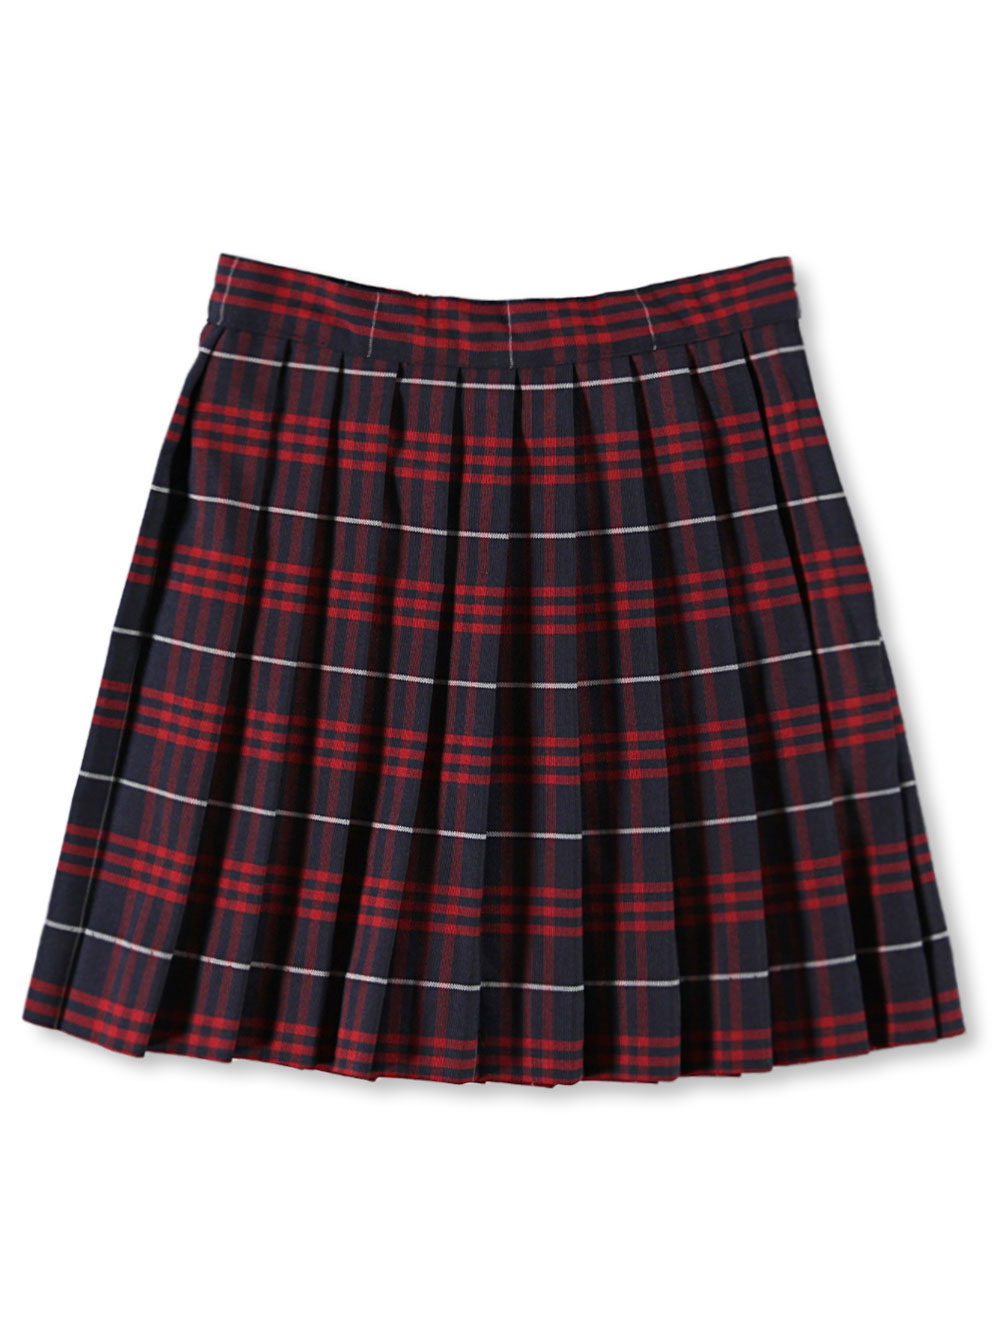 Girls Plaid #76 Skirts